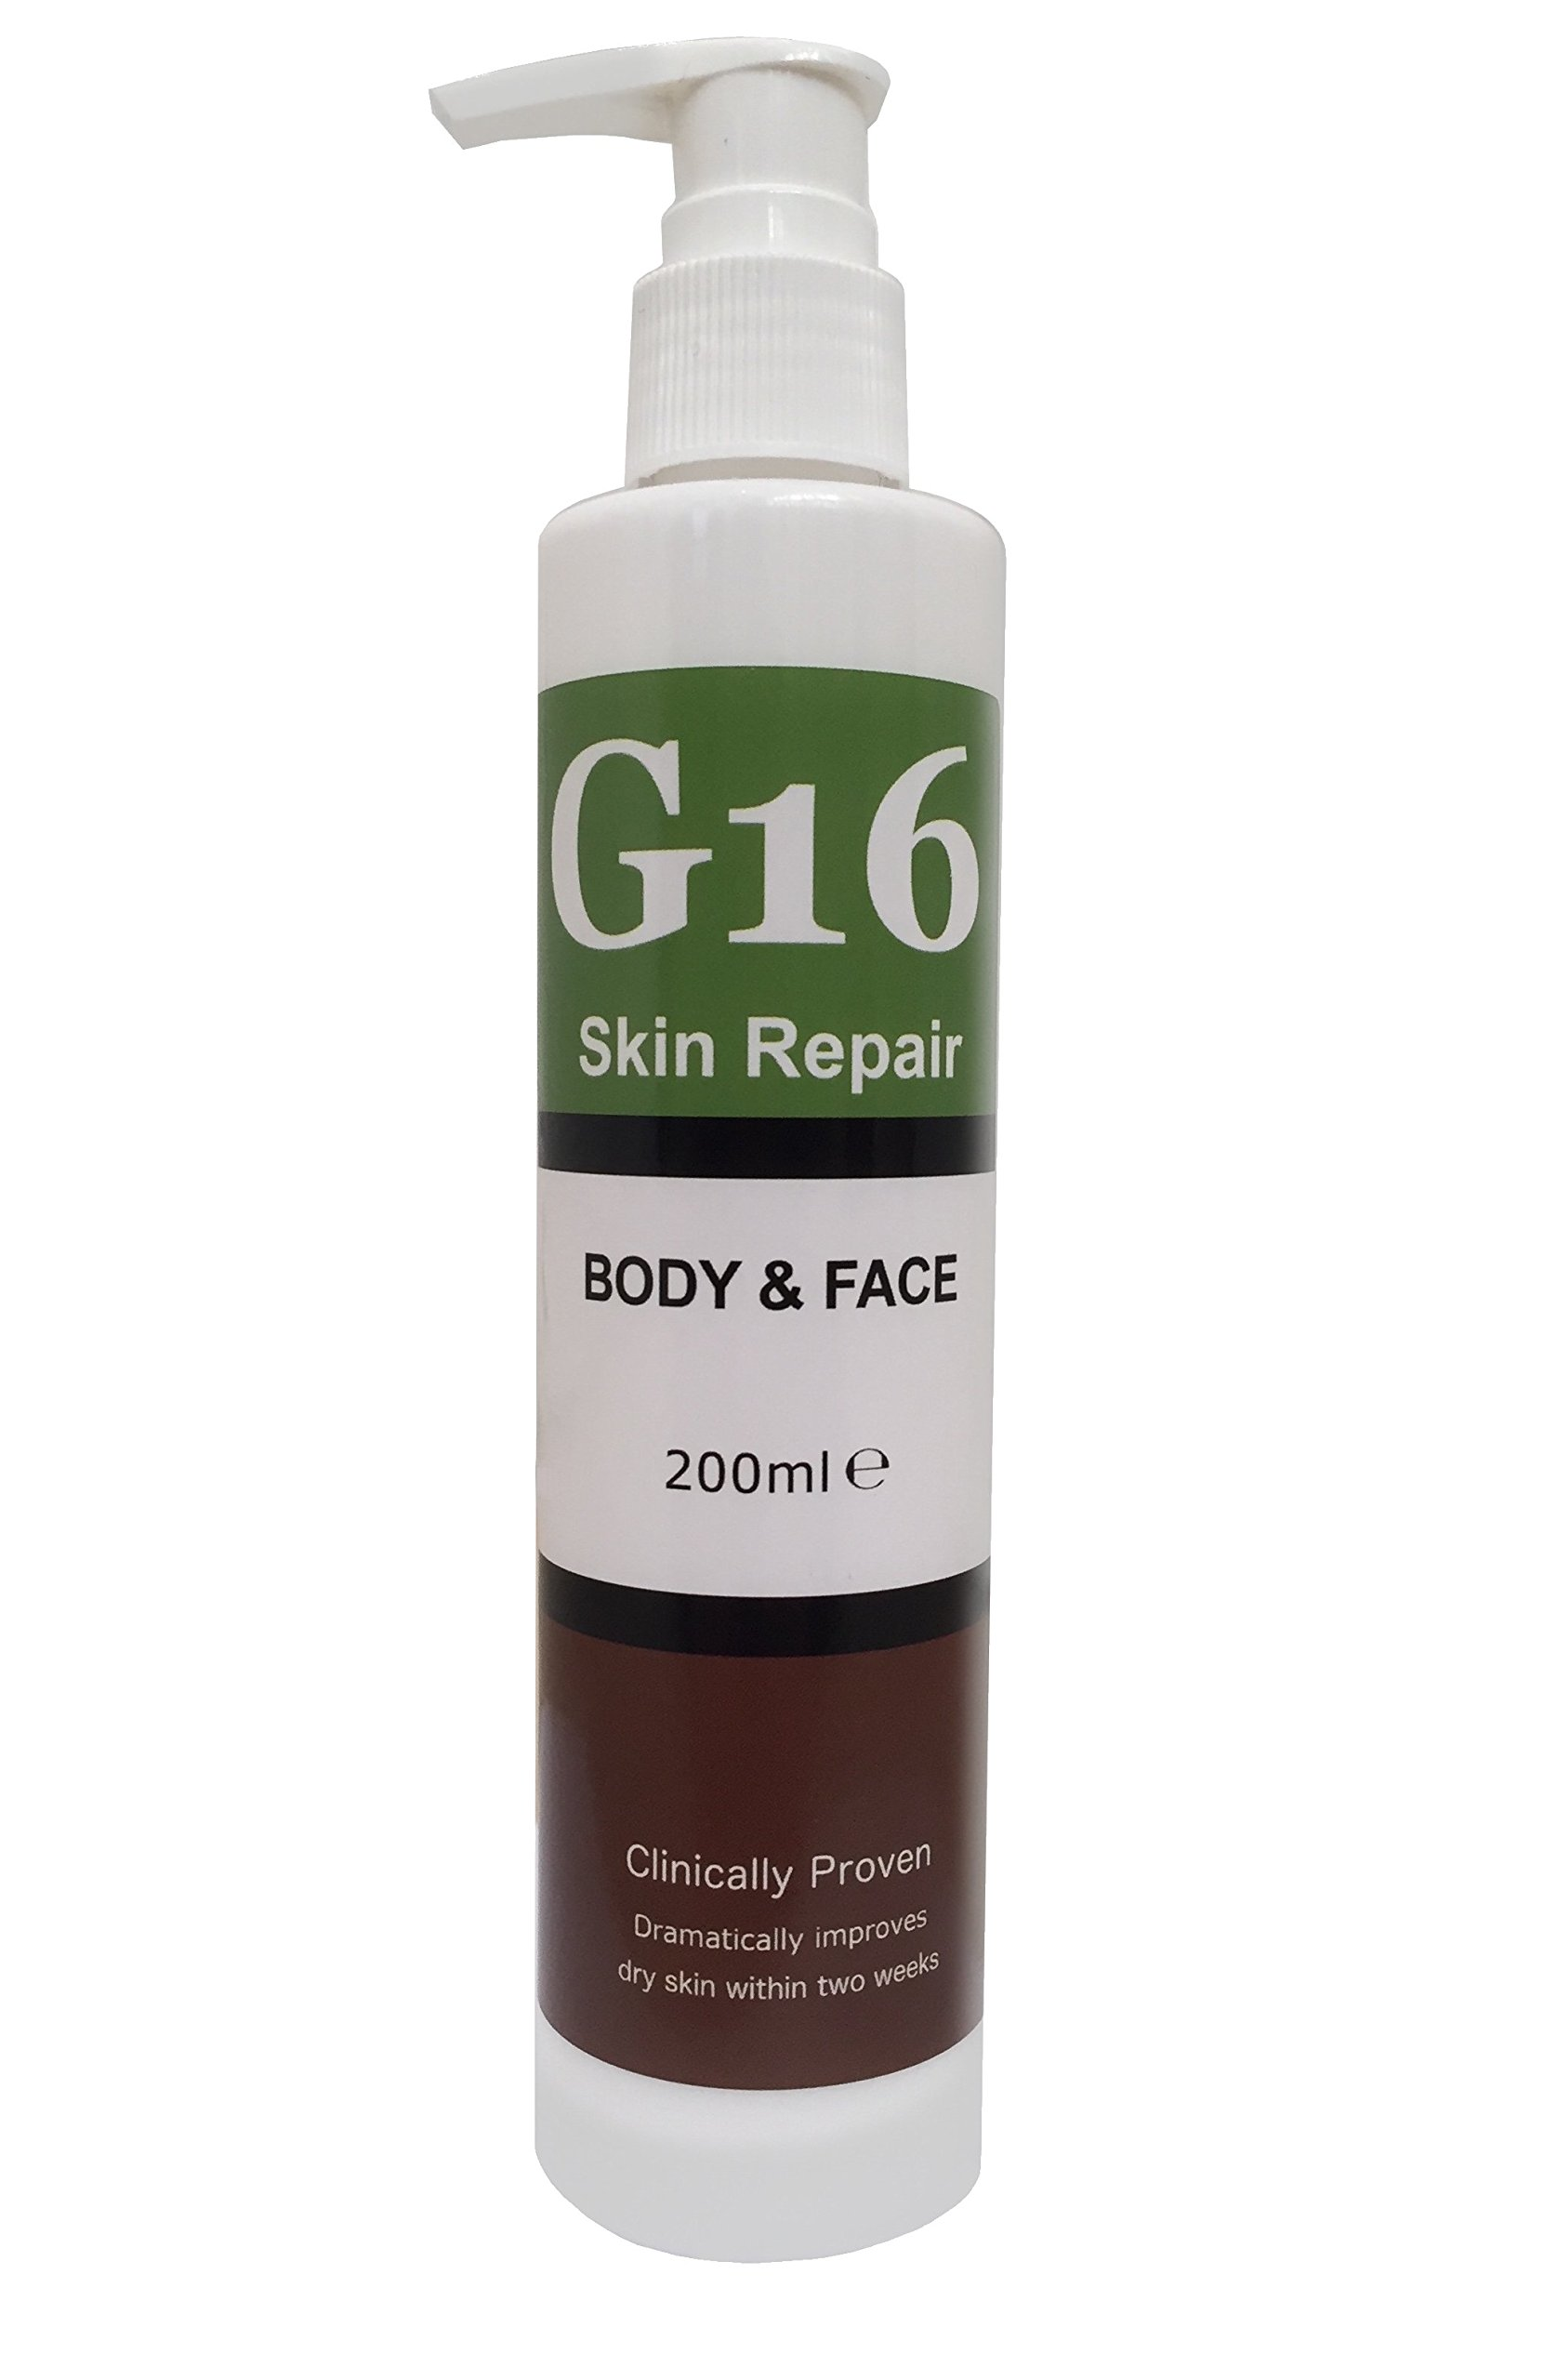 Excellent Ichthyosis Treatment, Outstanding Results in 2 Weeks by G16 Skin Repair Lotion